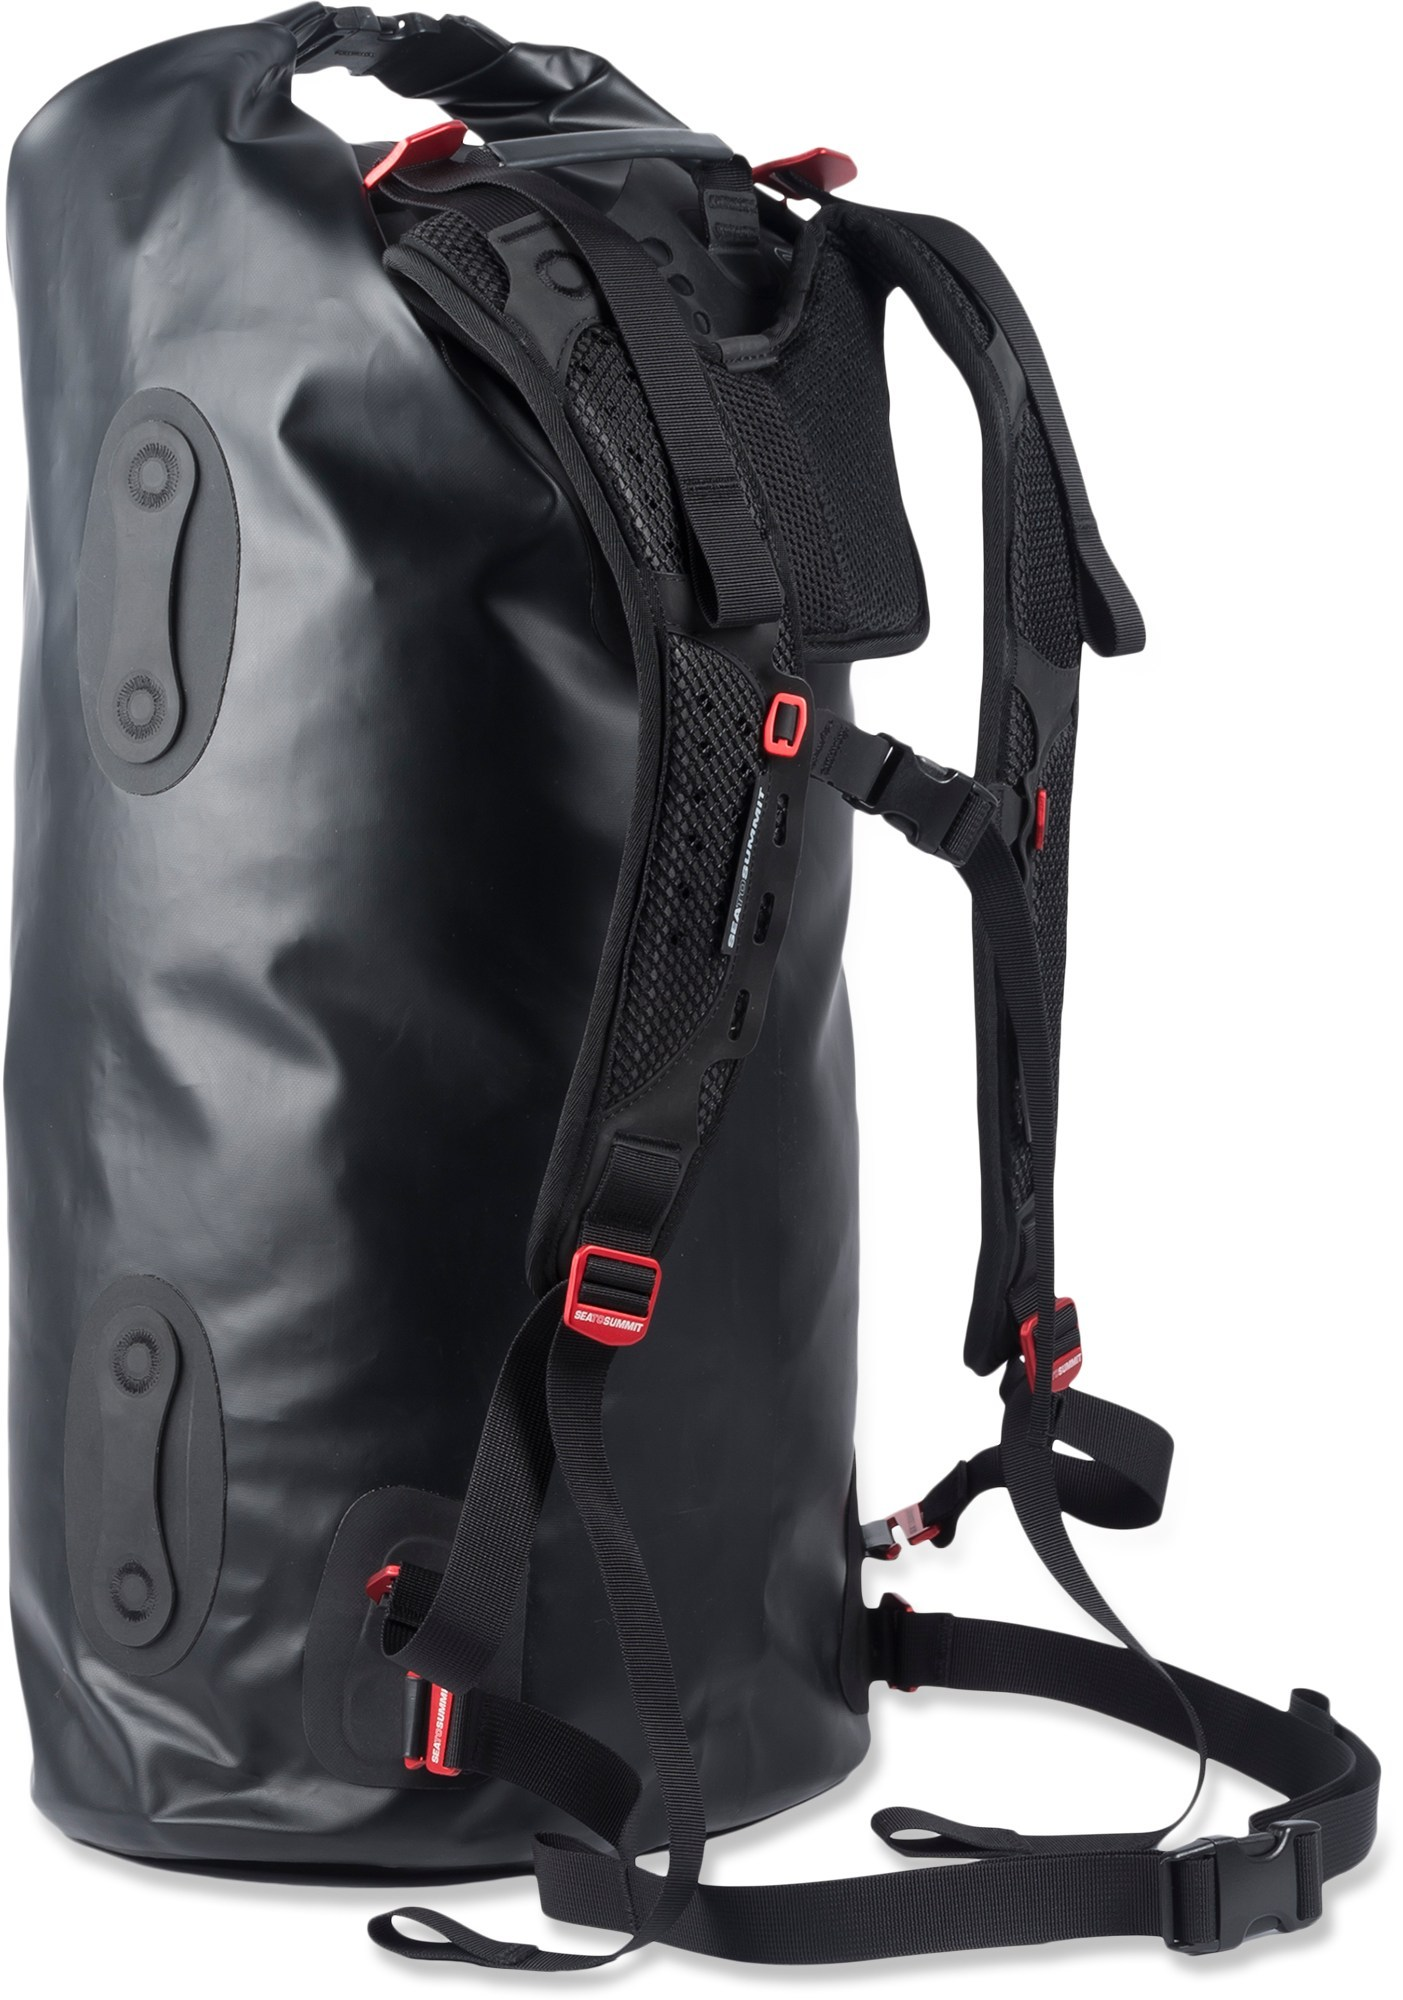 Sea to Summit Hydraulic Dry Pack - 35L